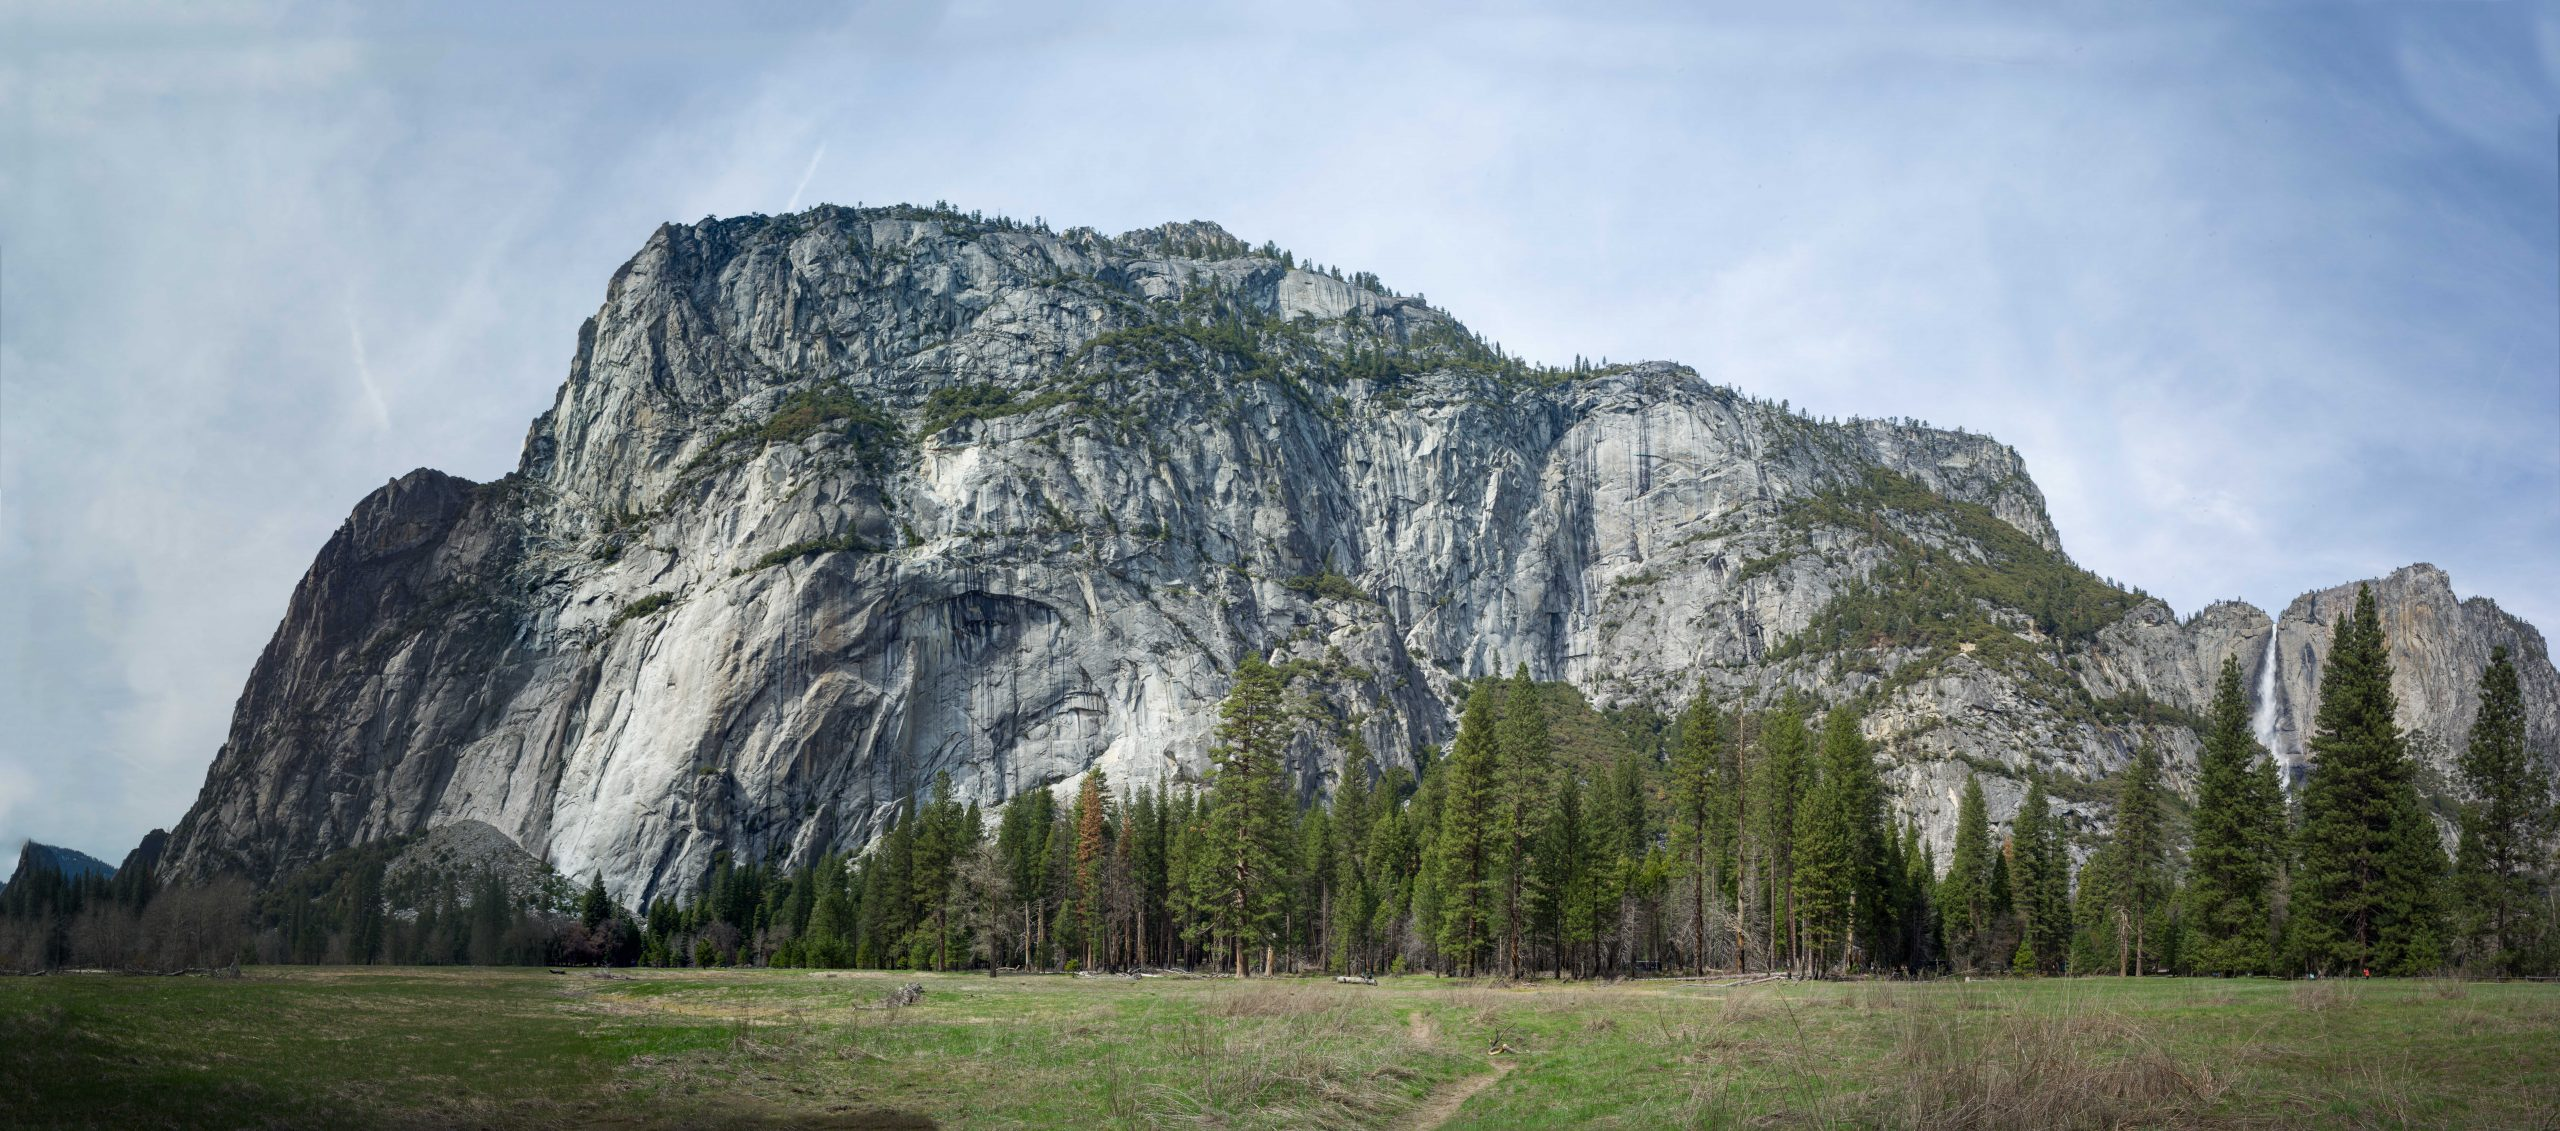 Visiting Yosemite in March